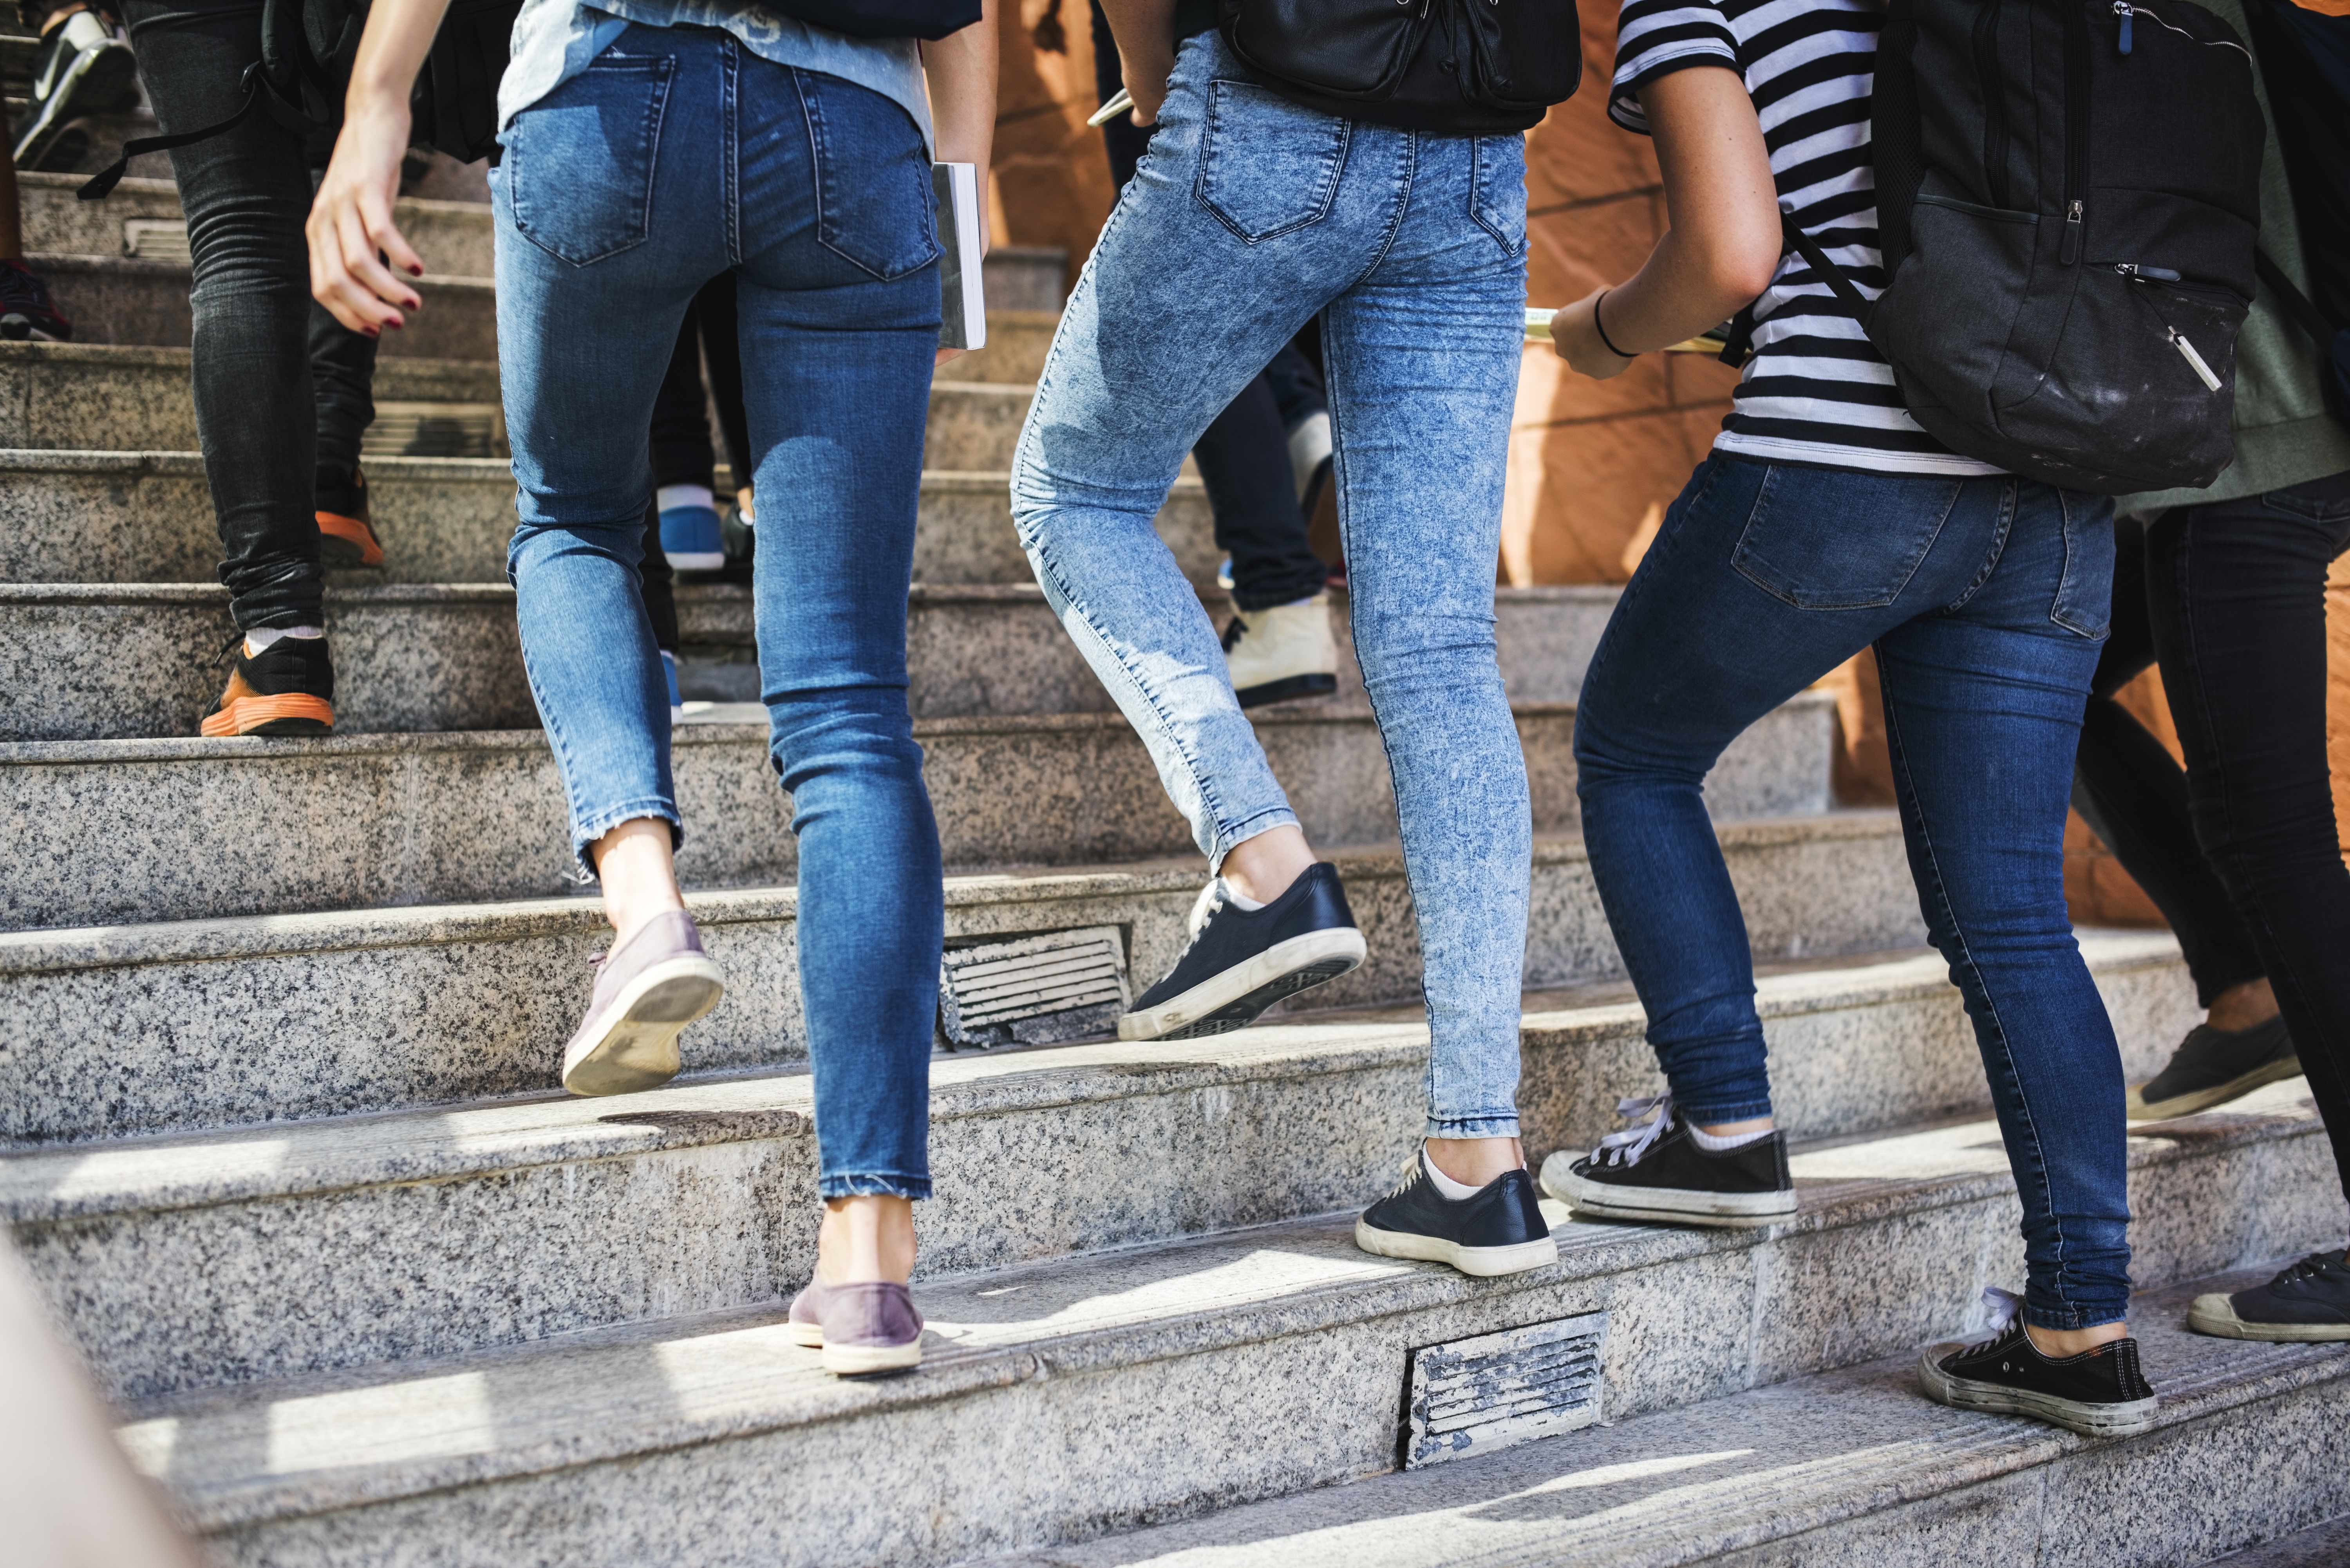 students-walking-up-on-staircase-P5JLS3D